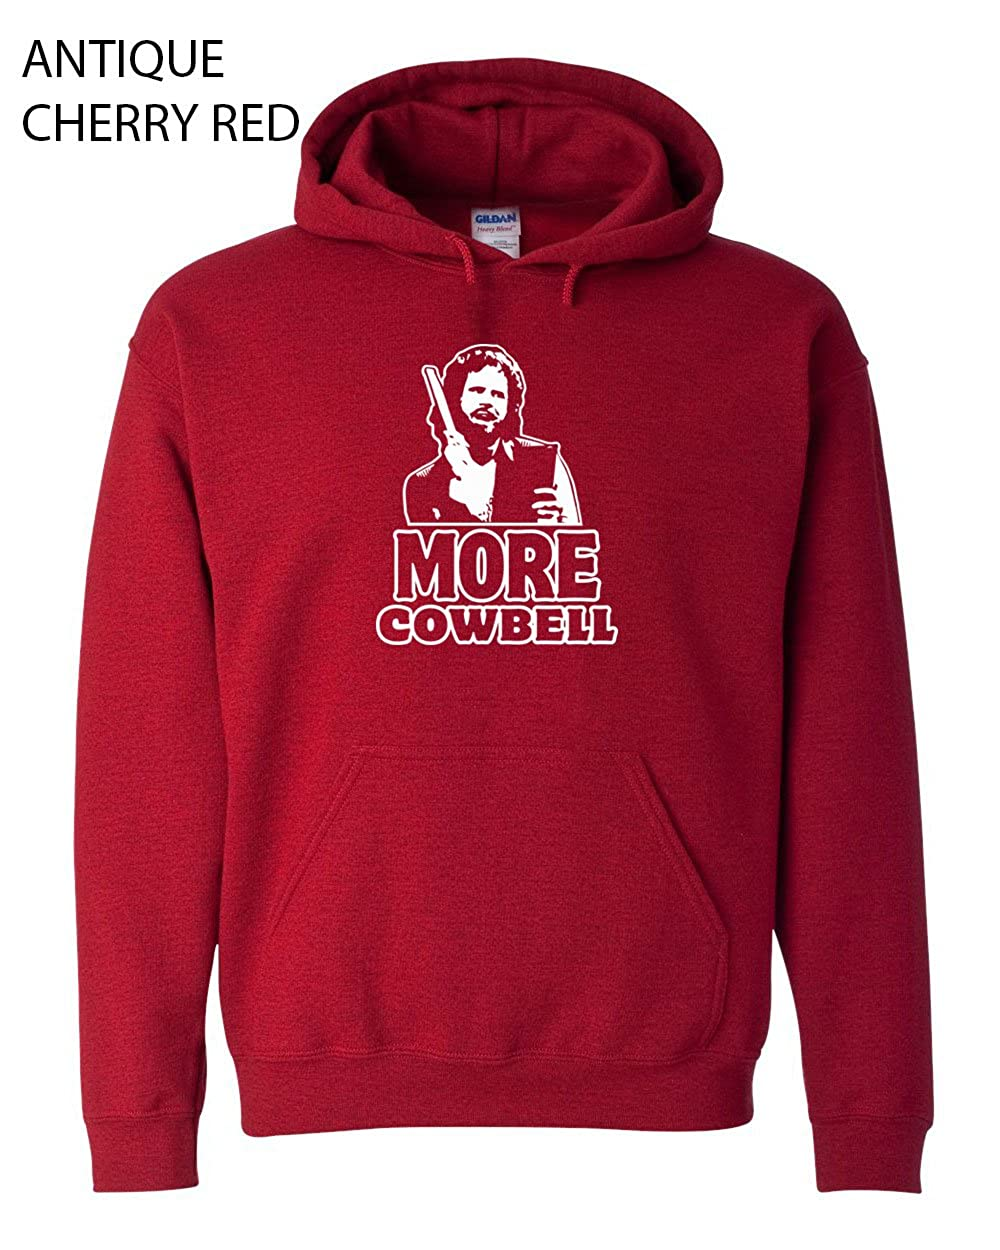 156 I Need More Cowbell Funny Hooded Sweatshirt